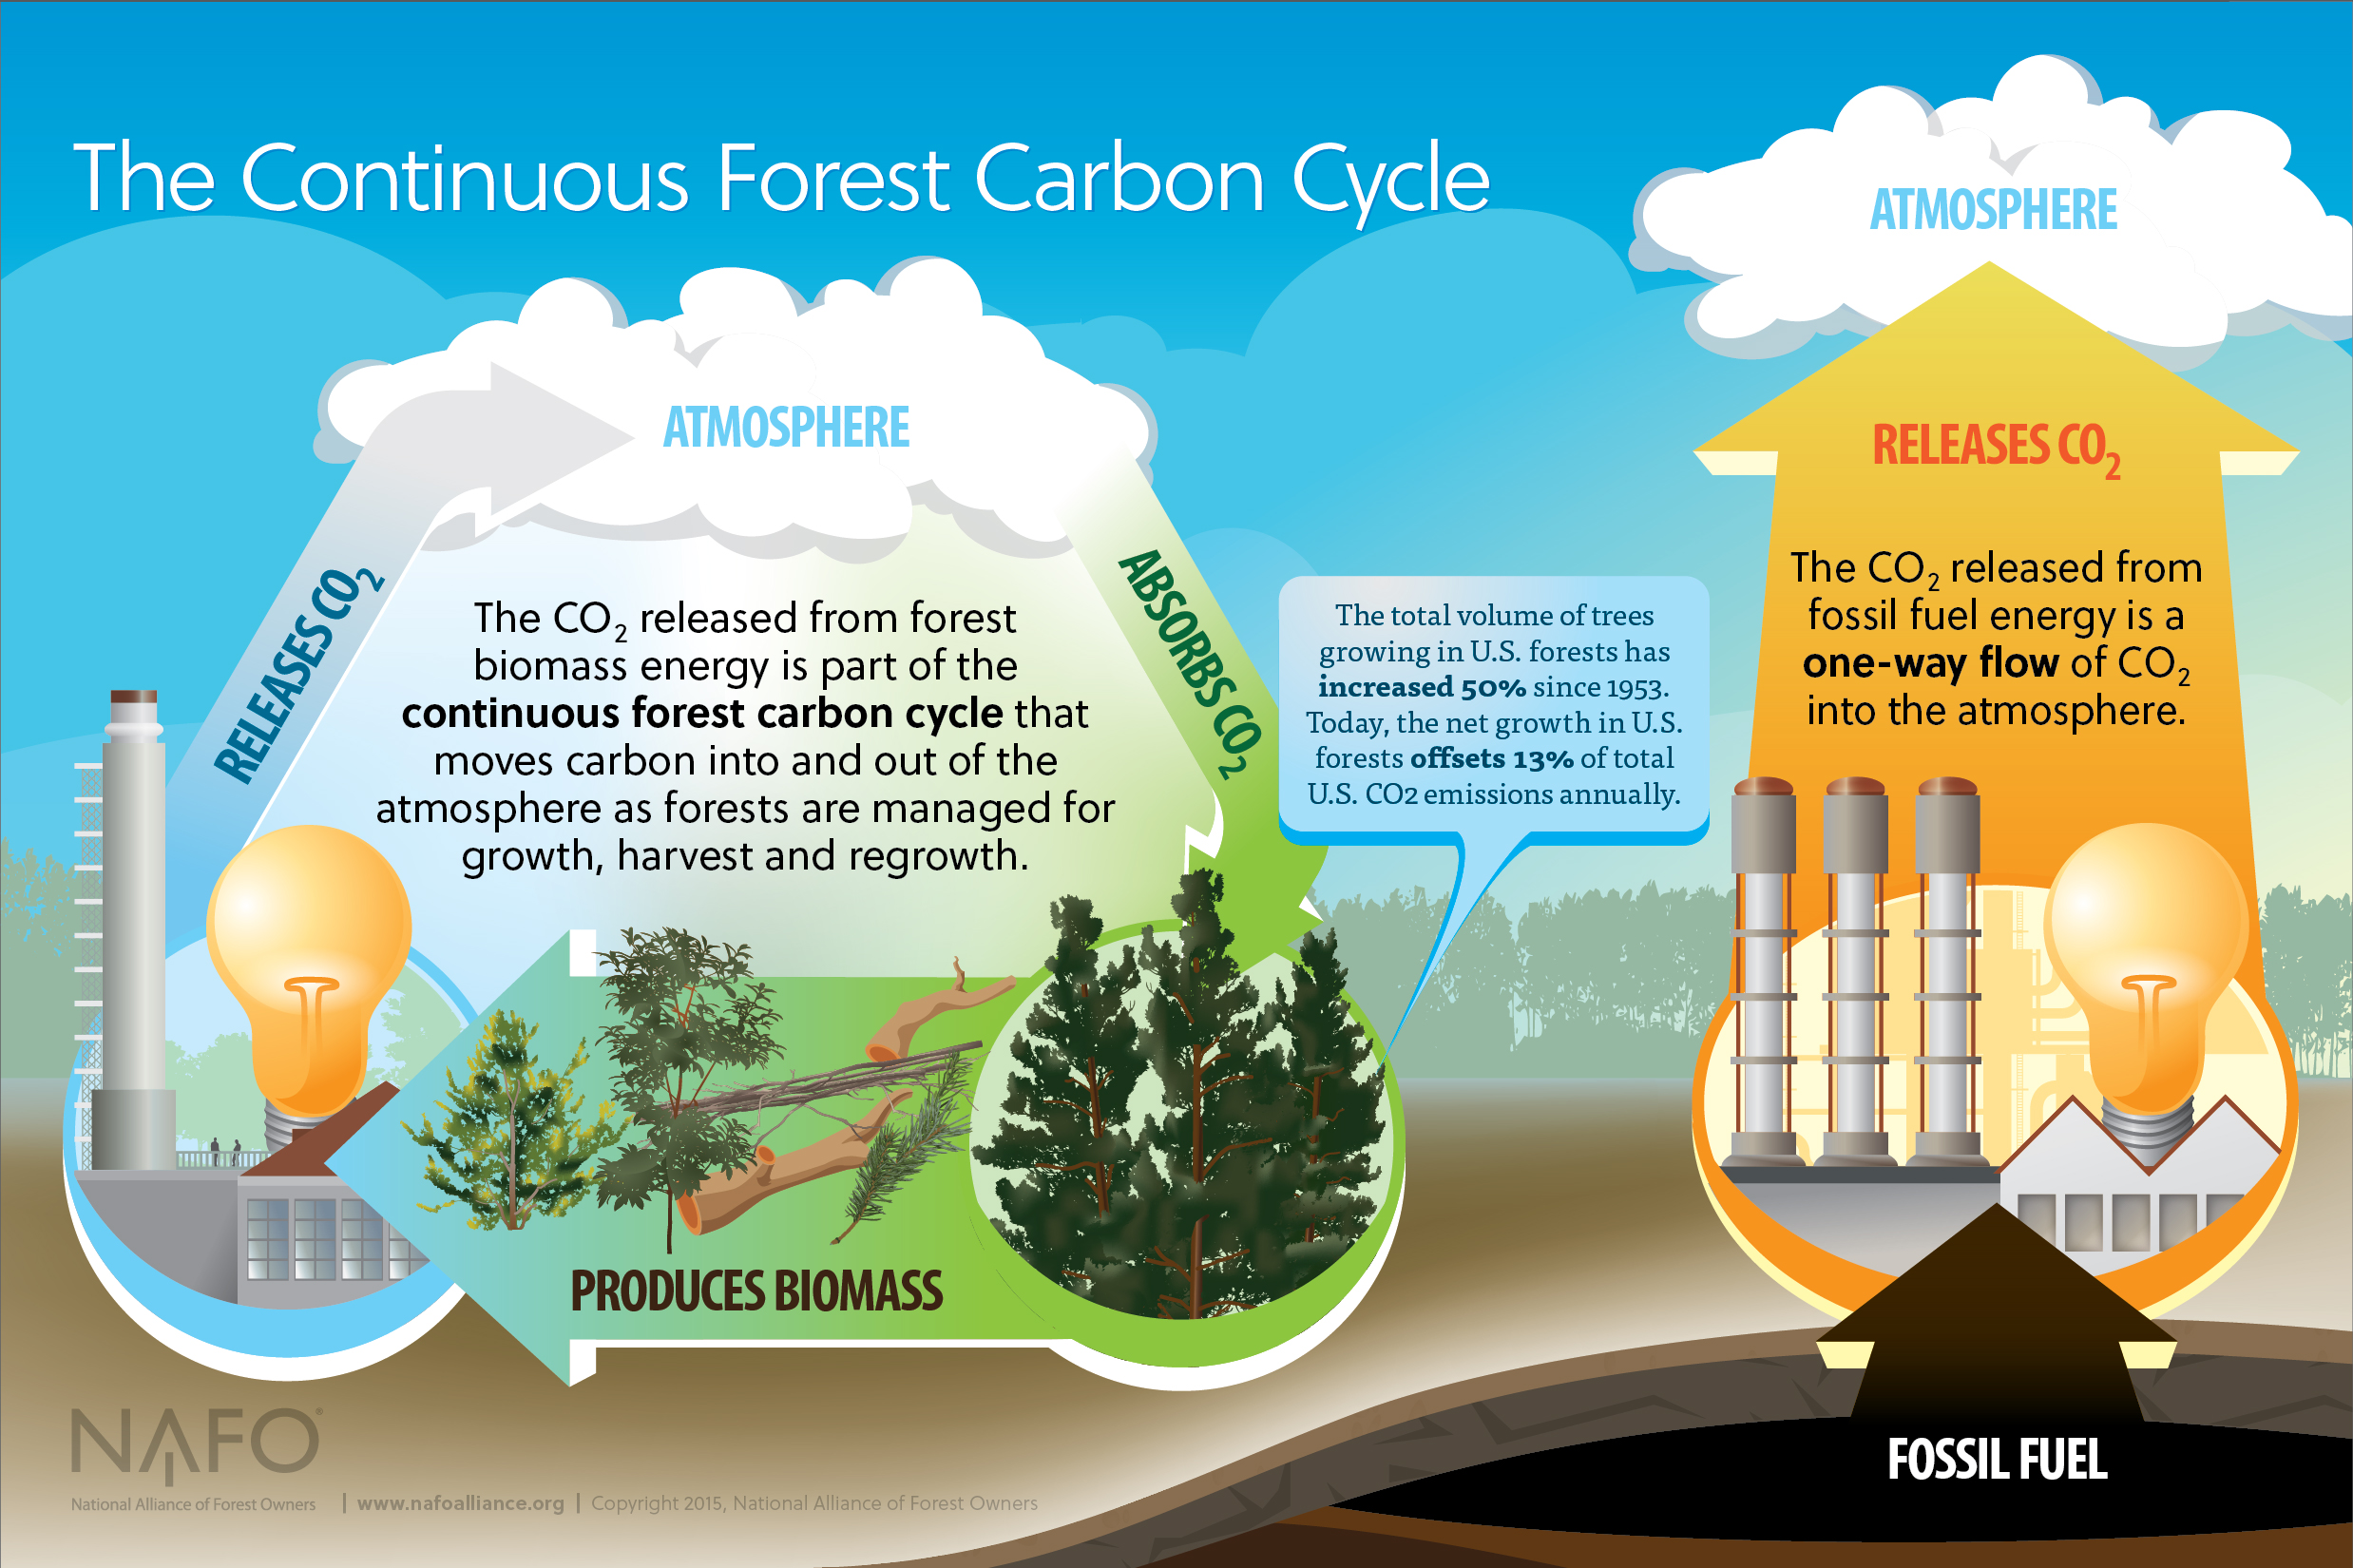 Courtesy National Alliance of Forest Owners